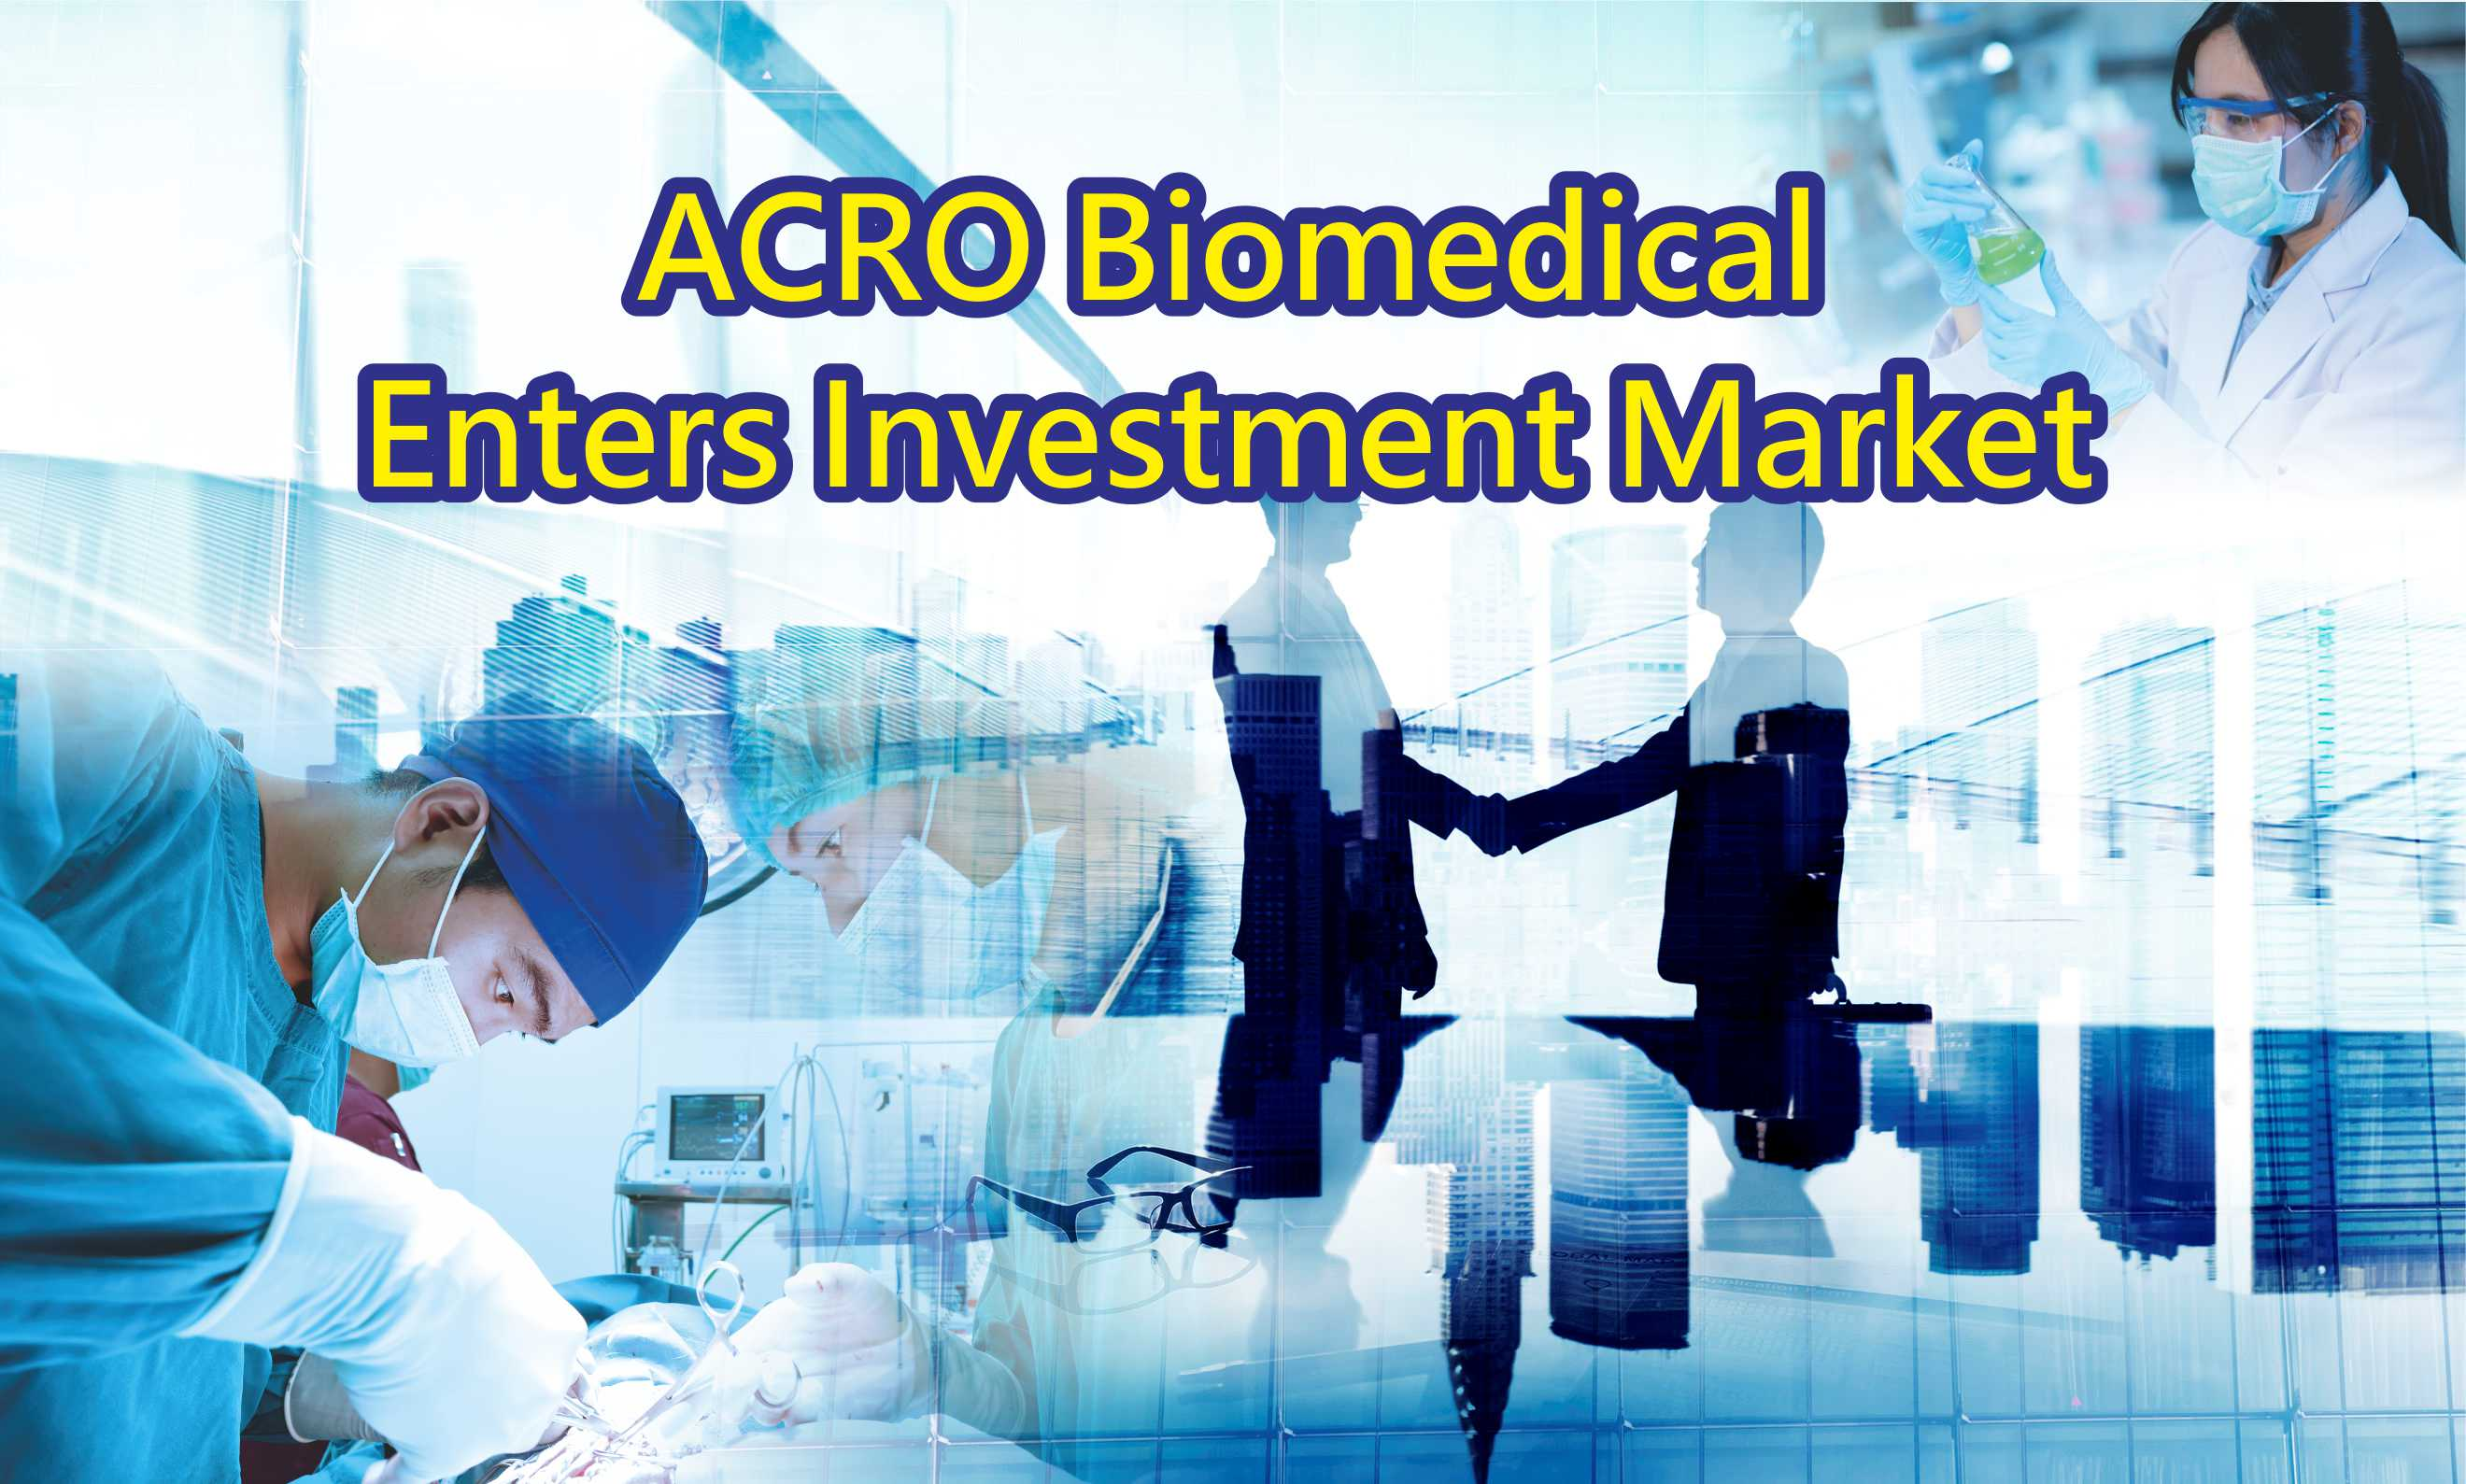 Commercial Times: ACRO Biomedical Enters Investment Market